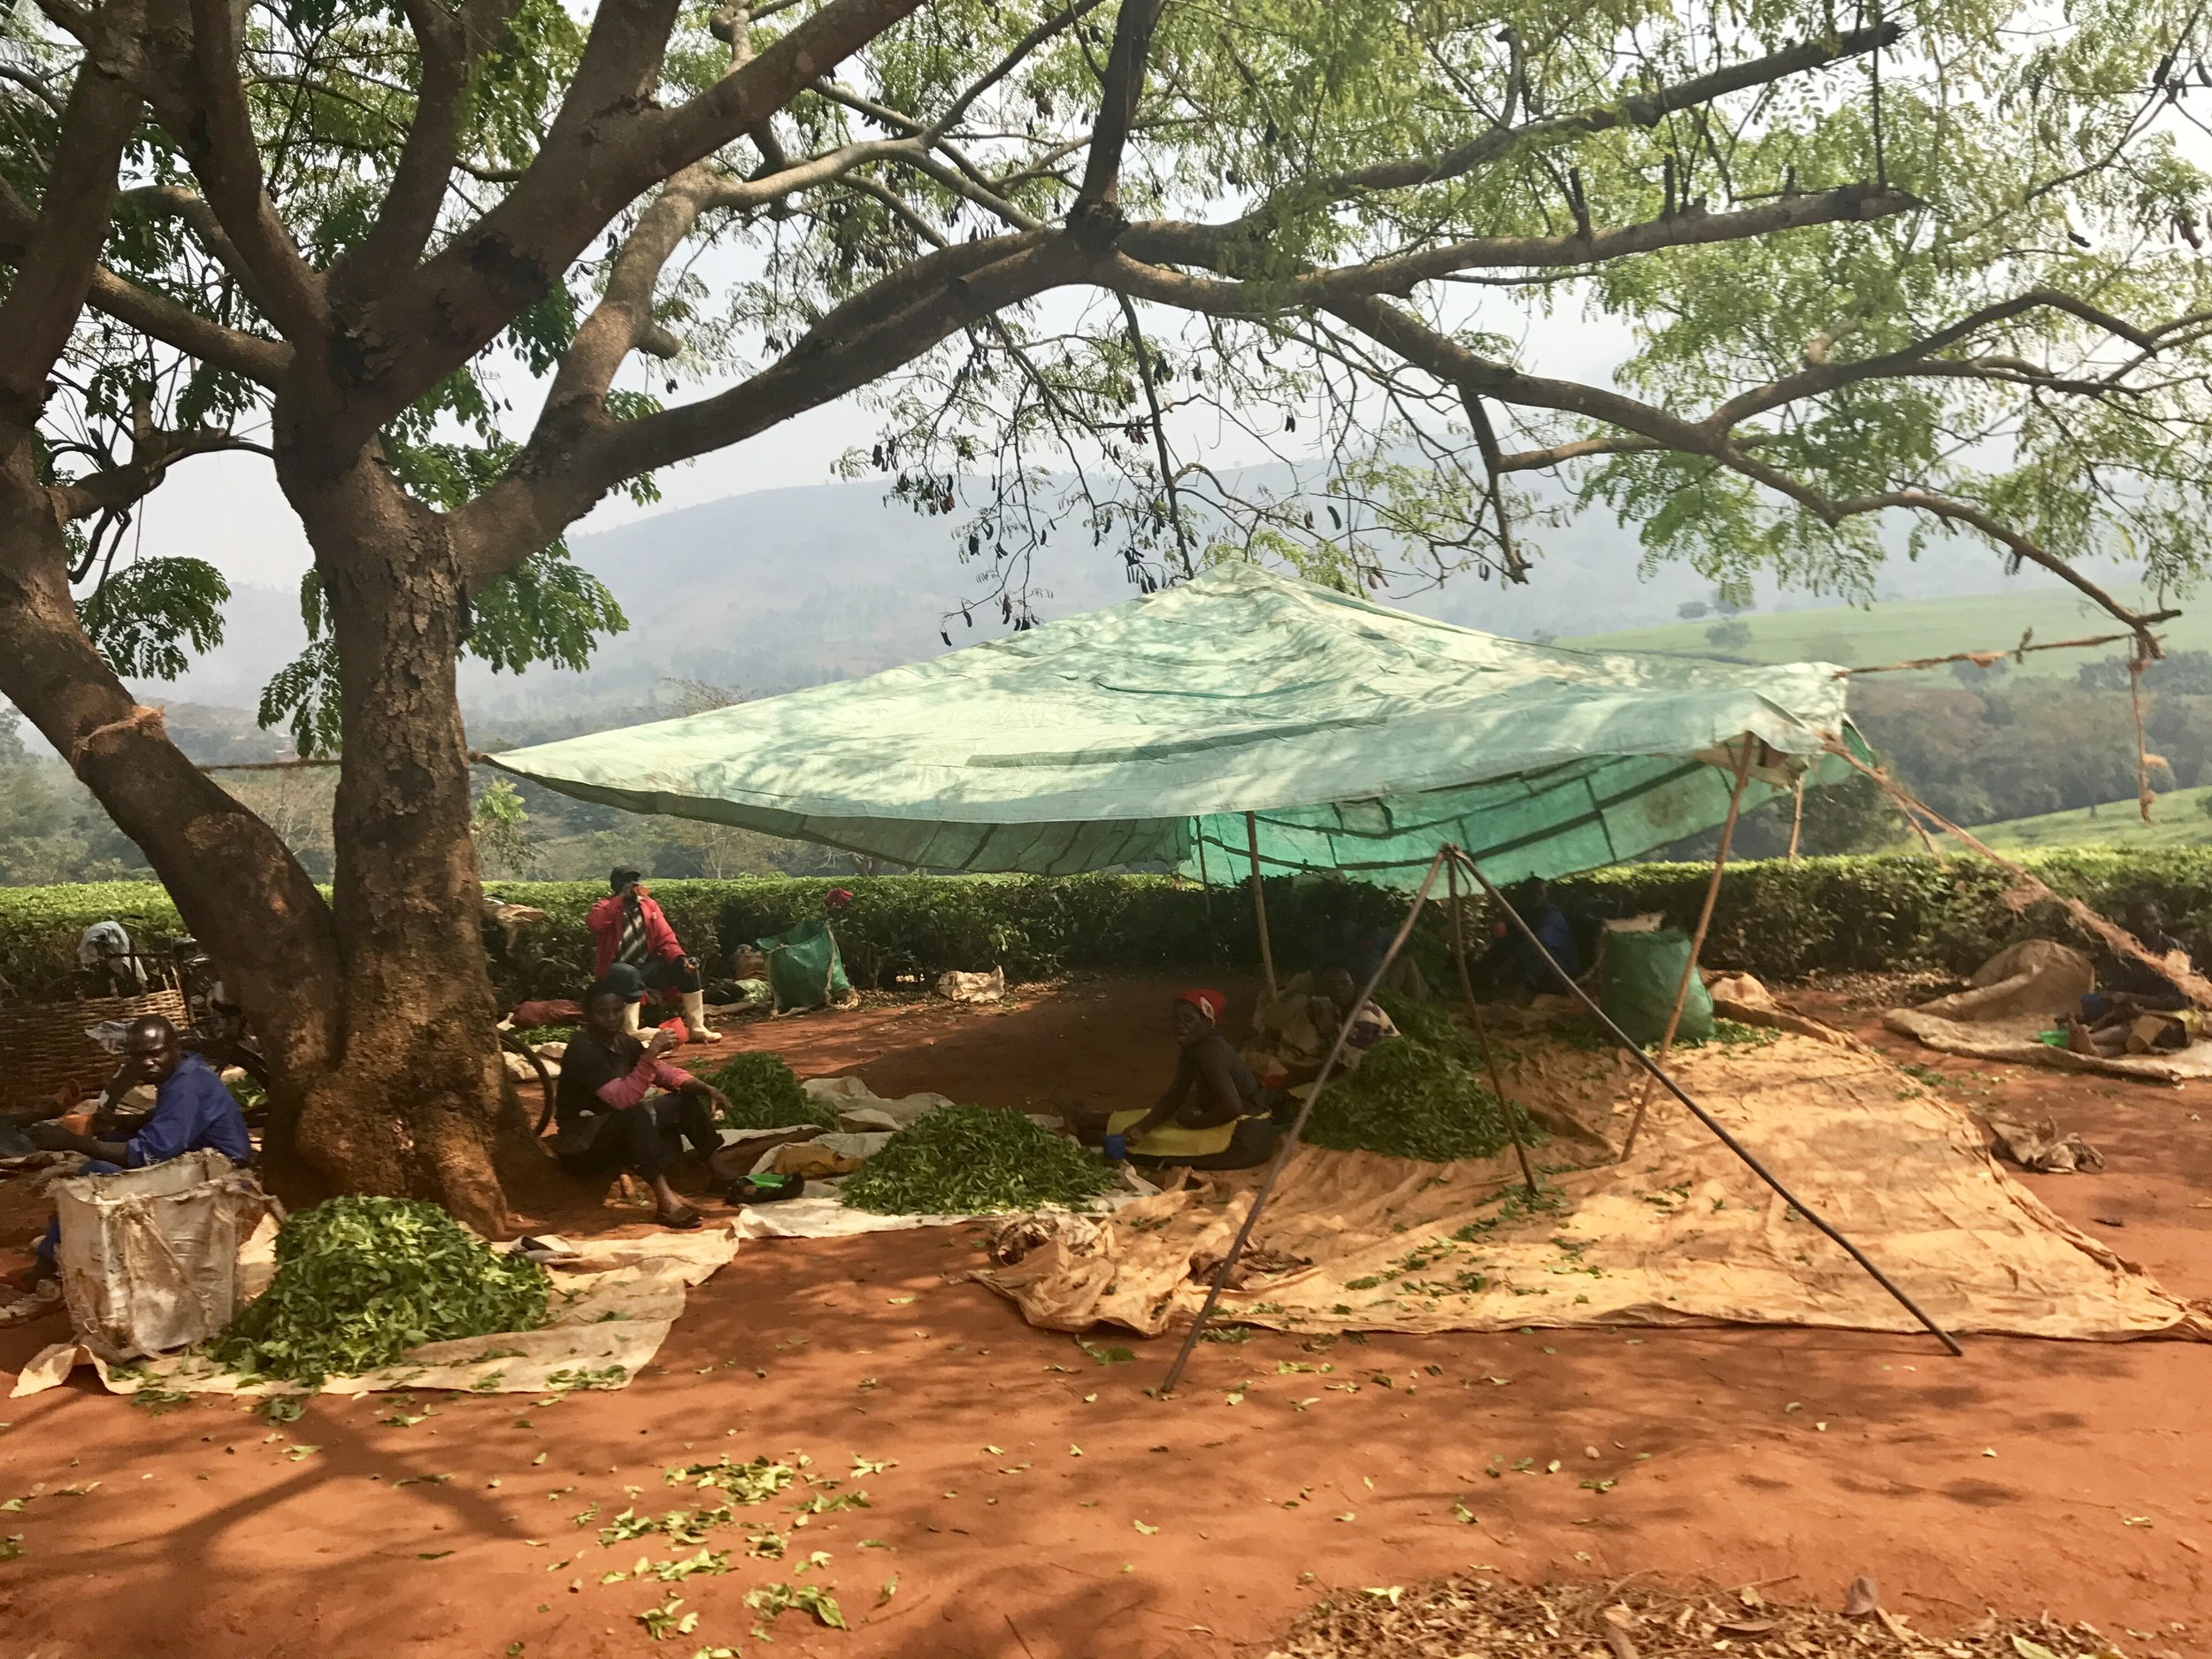 Tea-pickers take a break in the shade and wait to weigh their bags